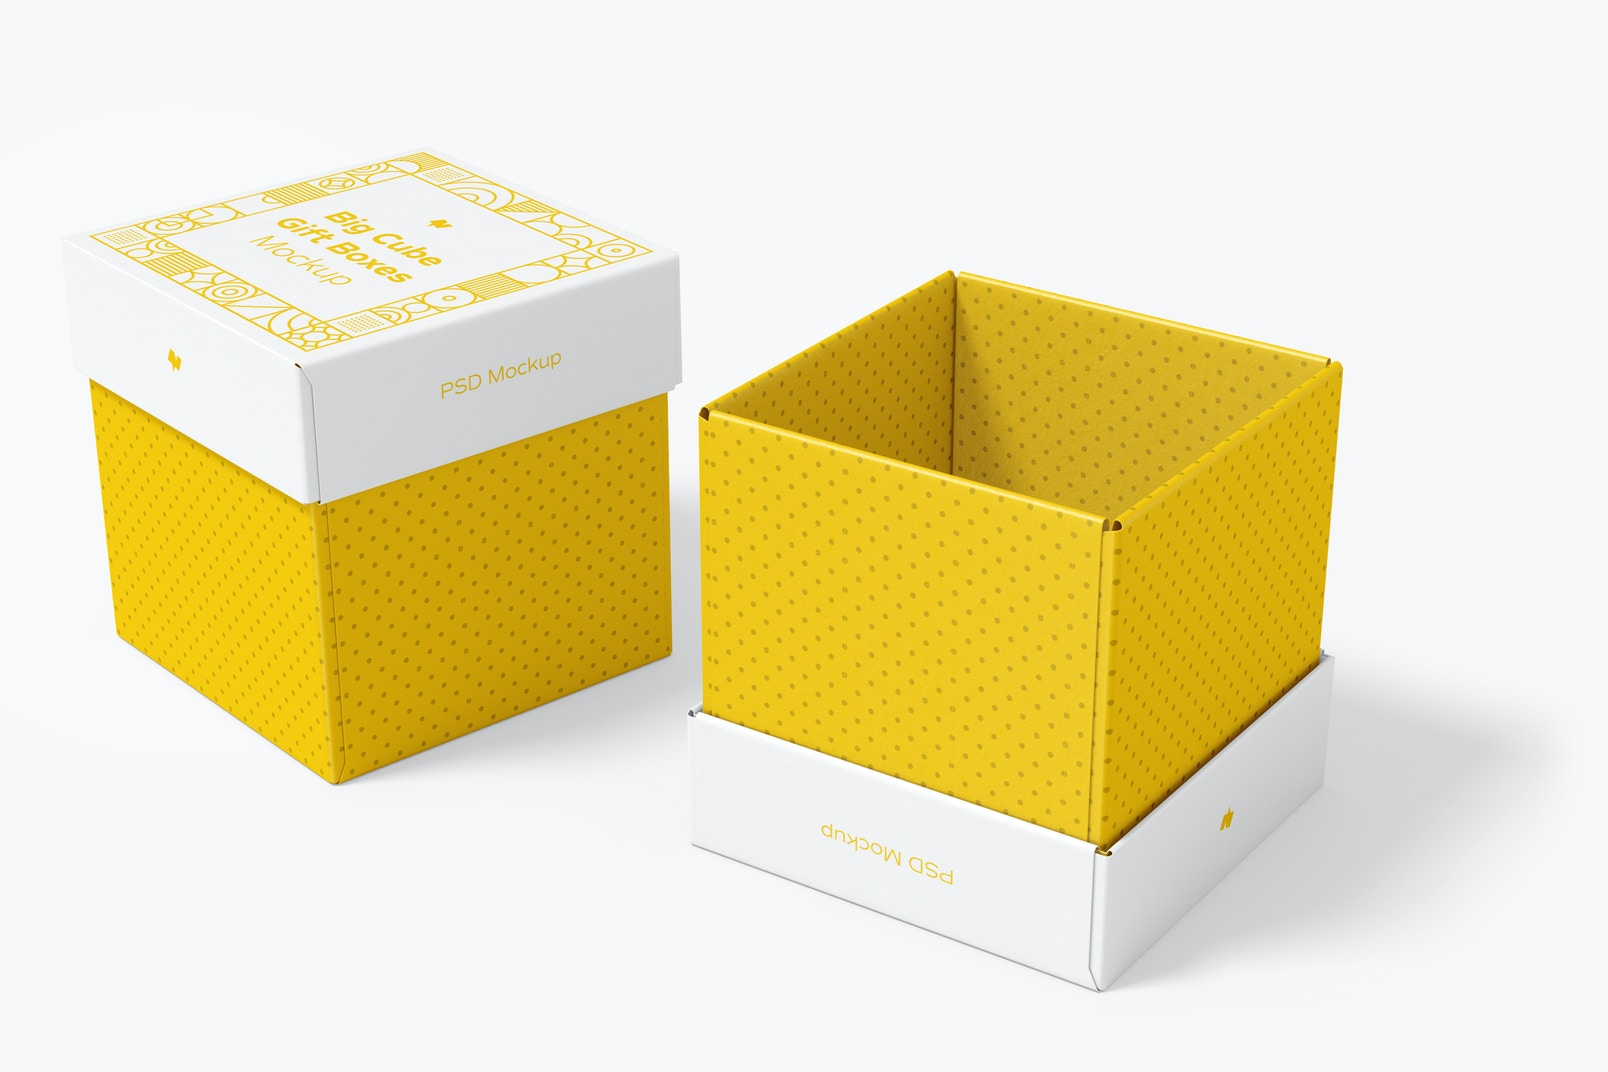 Big Cube Gift Boxes Mockup, Opened and Closed